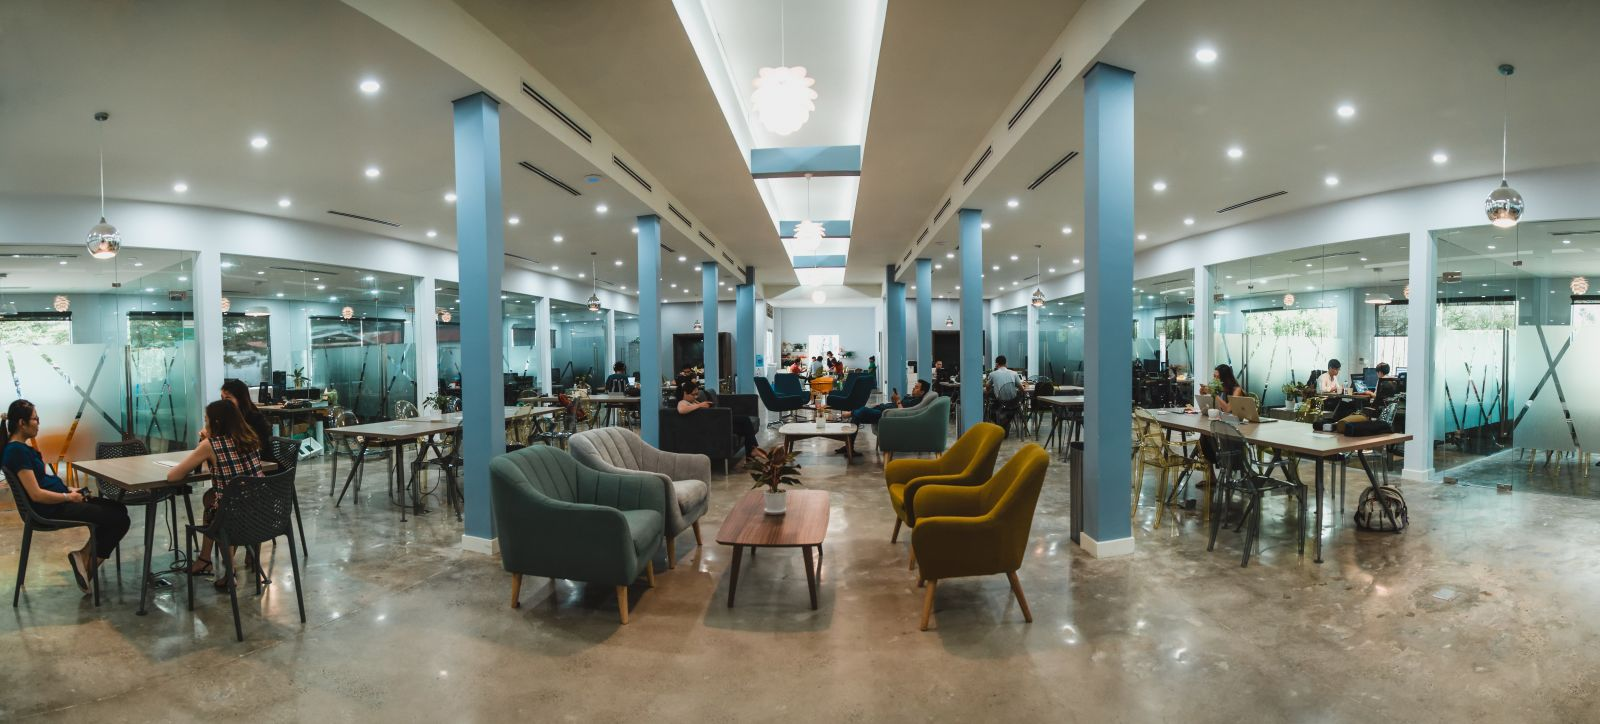 UP Coworking Space, Ho Chi Minh City - Read Reviews & Book Online